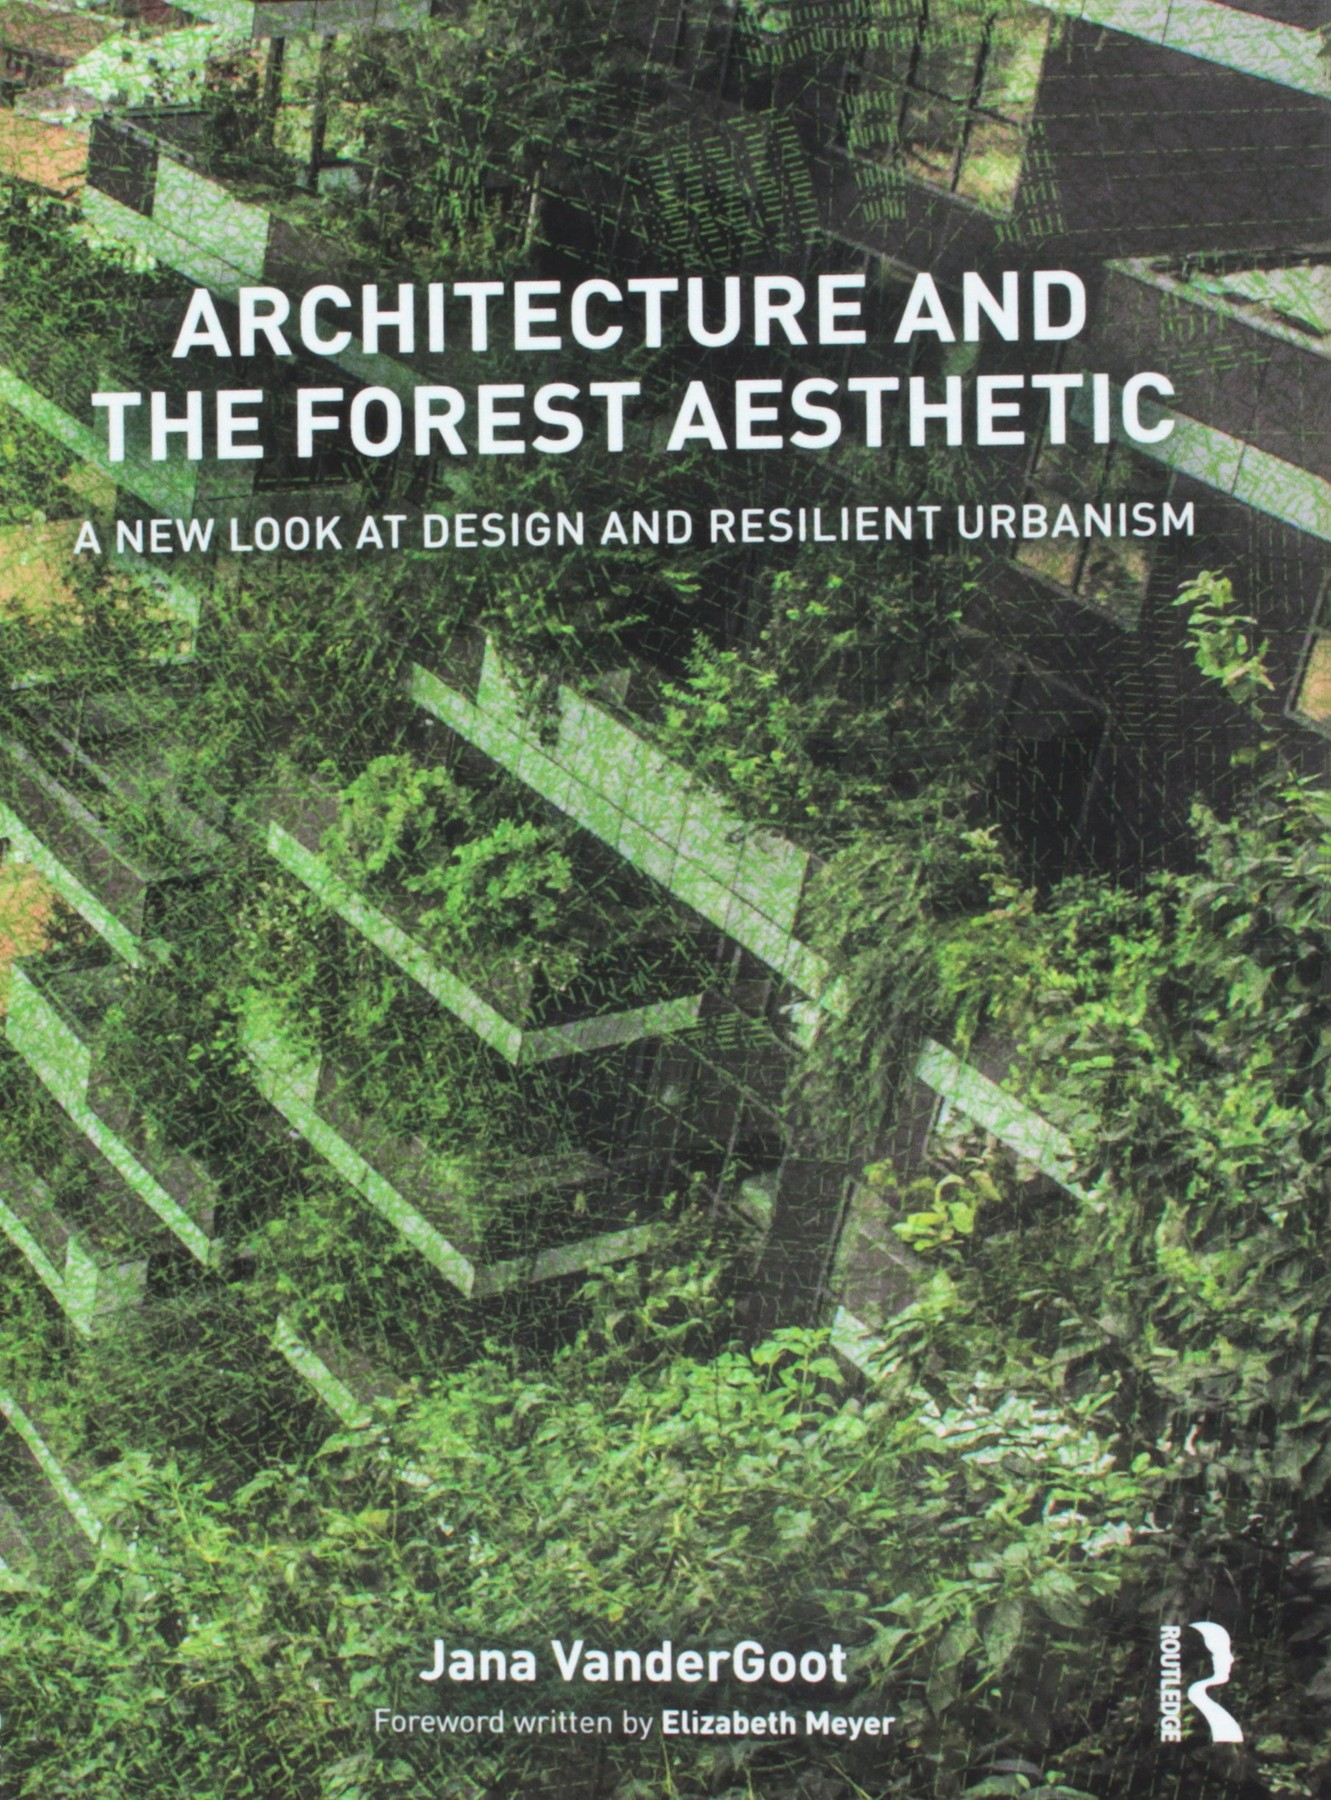 Jana Vander Goot, Architecture and the Forest Aesthetic